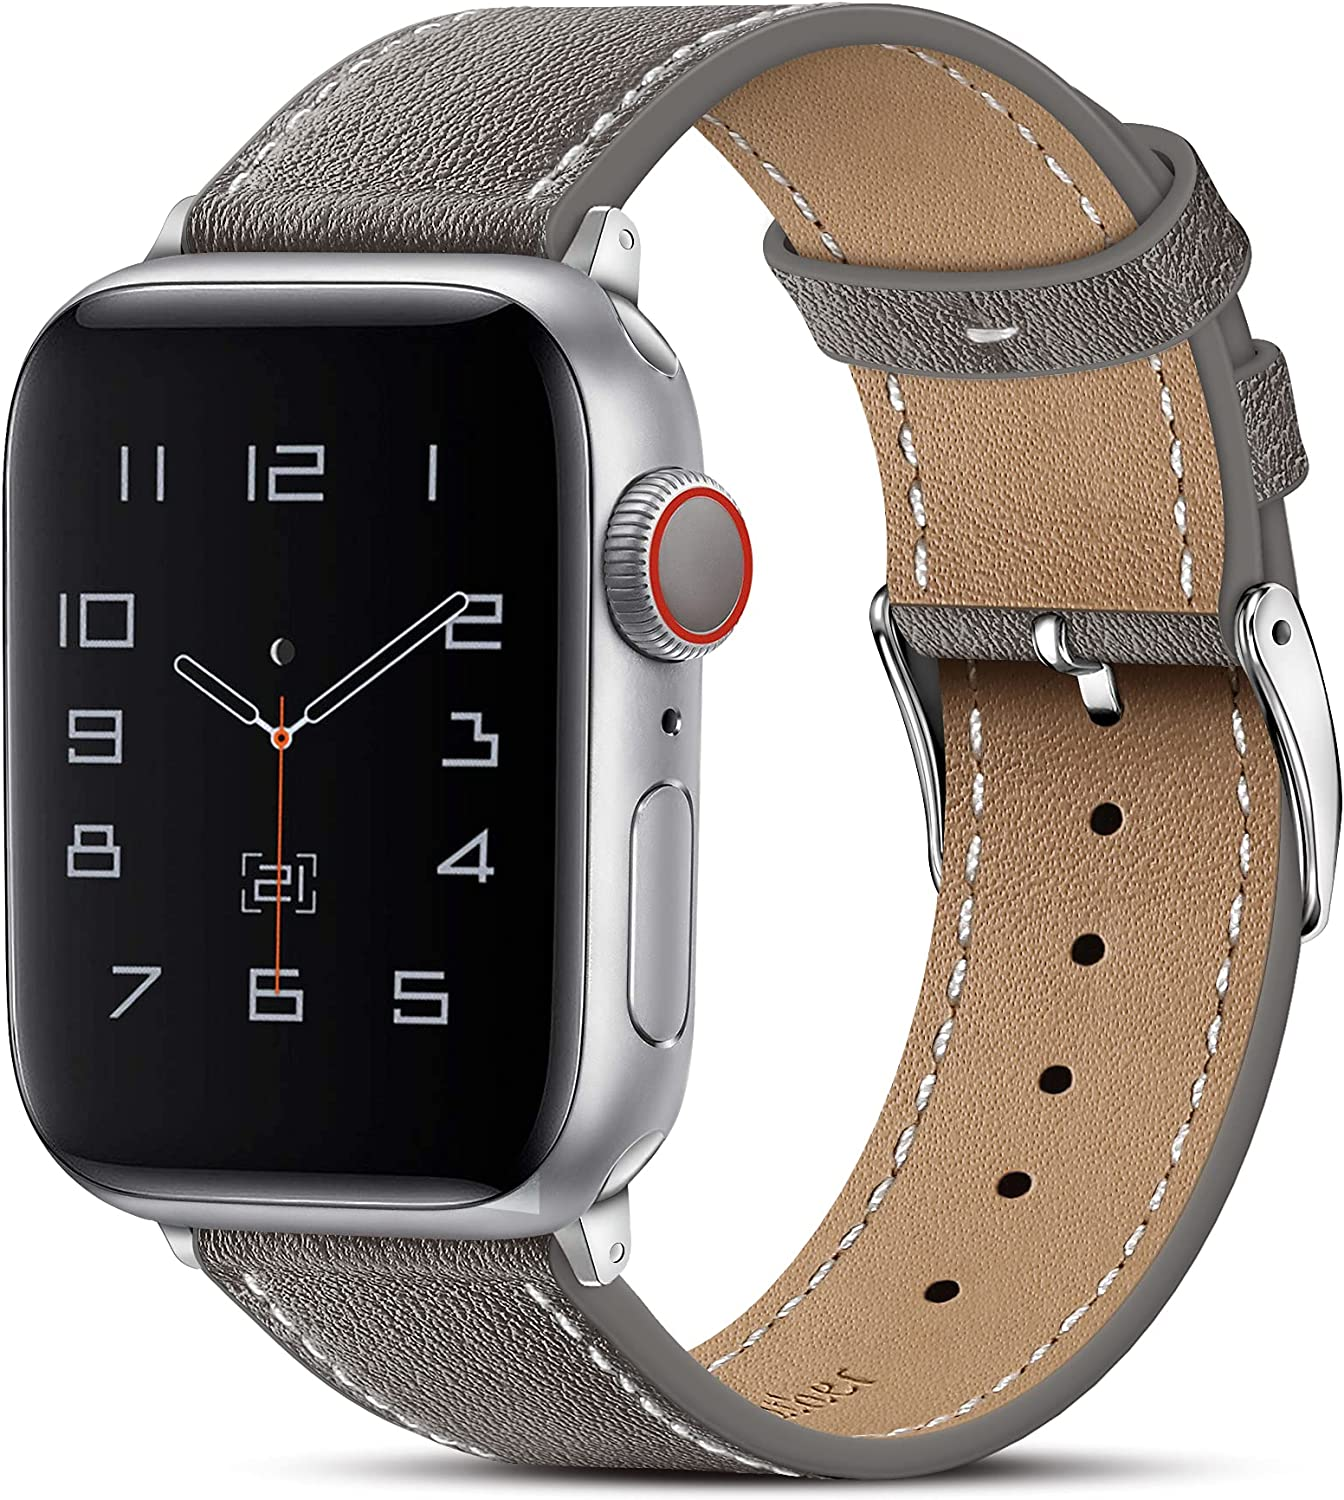 Marge Plus Compatible with Apple Watch Band 44mm 42mm 40mm 38mm, Genuine Leather Replacement Band for iWatch Series 6 5 4 3 2 1, SE (Dark Gray/Silver, 44mm/42mm)